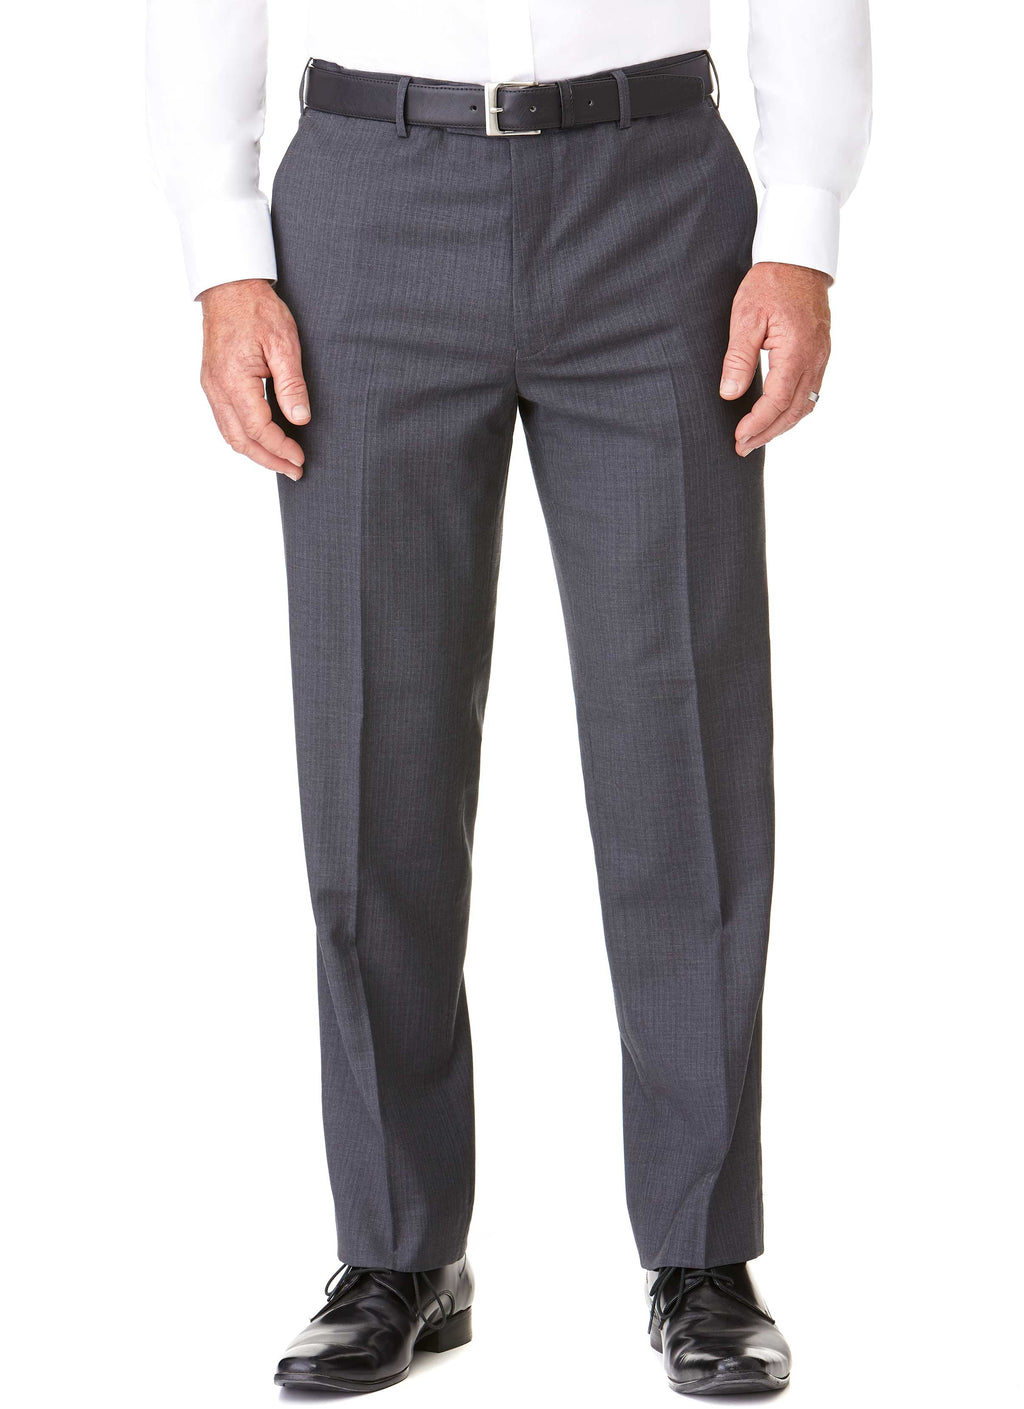 HOTHAM FLAT FRONT TROUSER - GREY SELF STRIPE